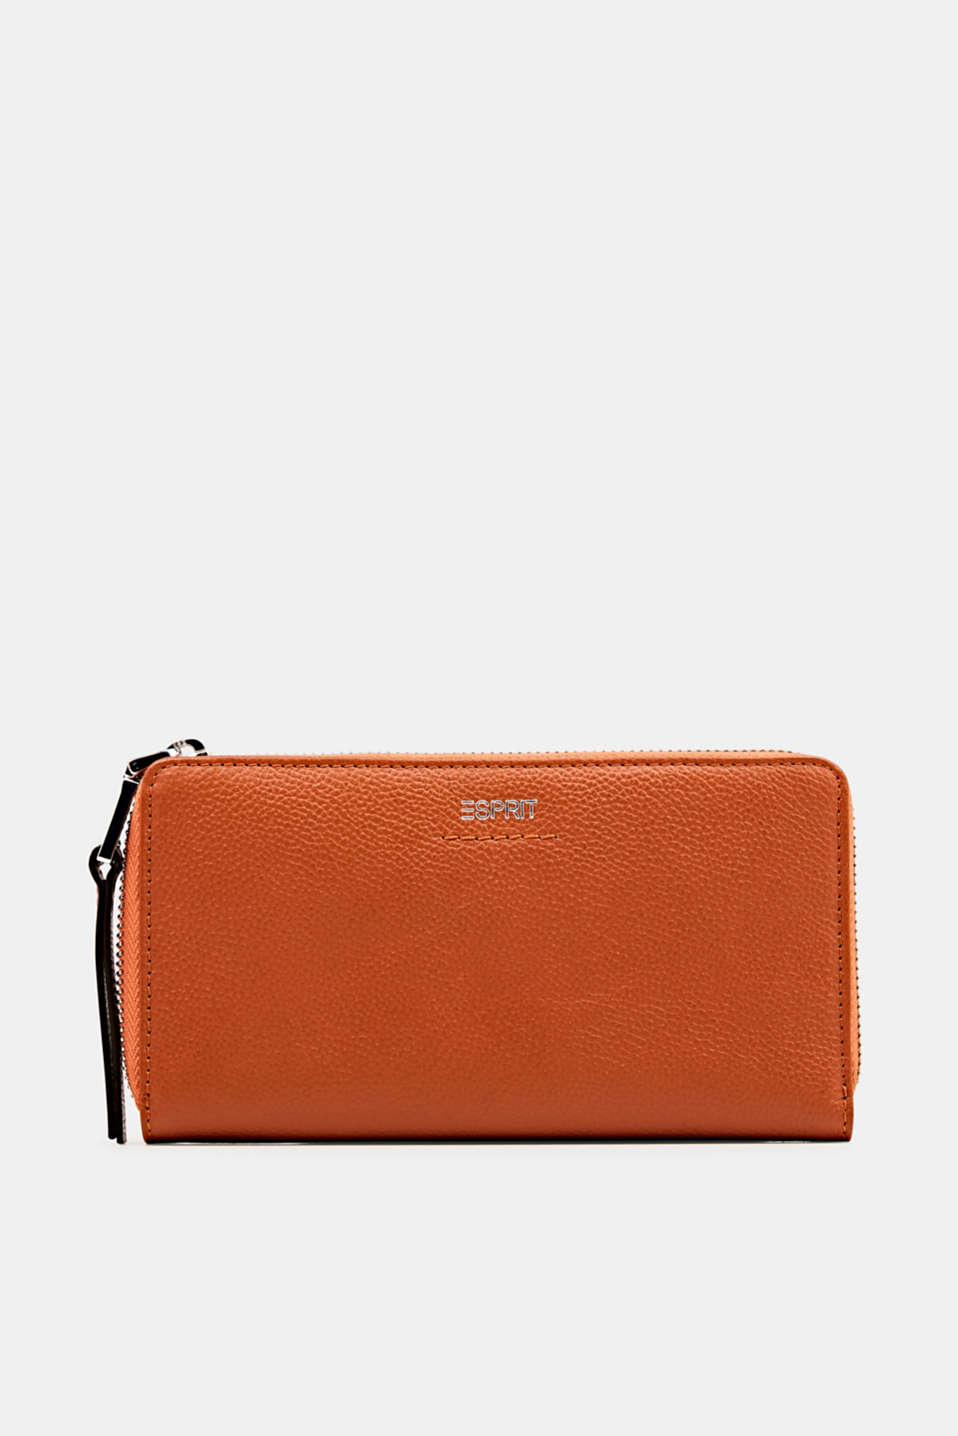 Esprit - Waiter-style purse, in leather